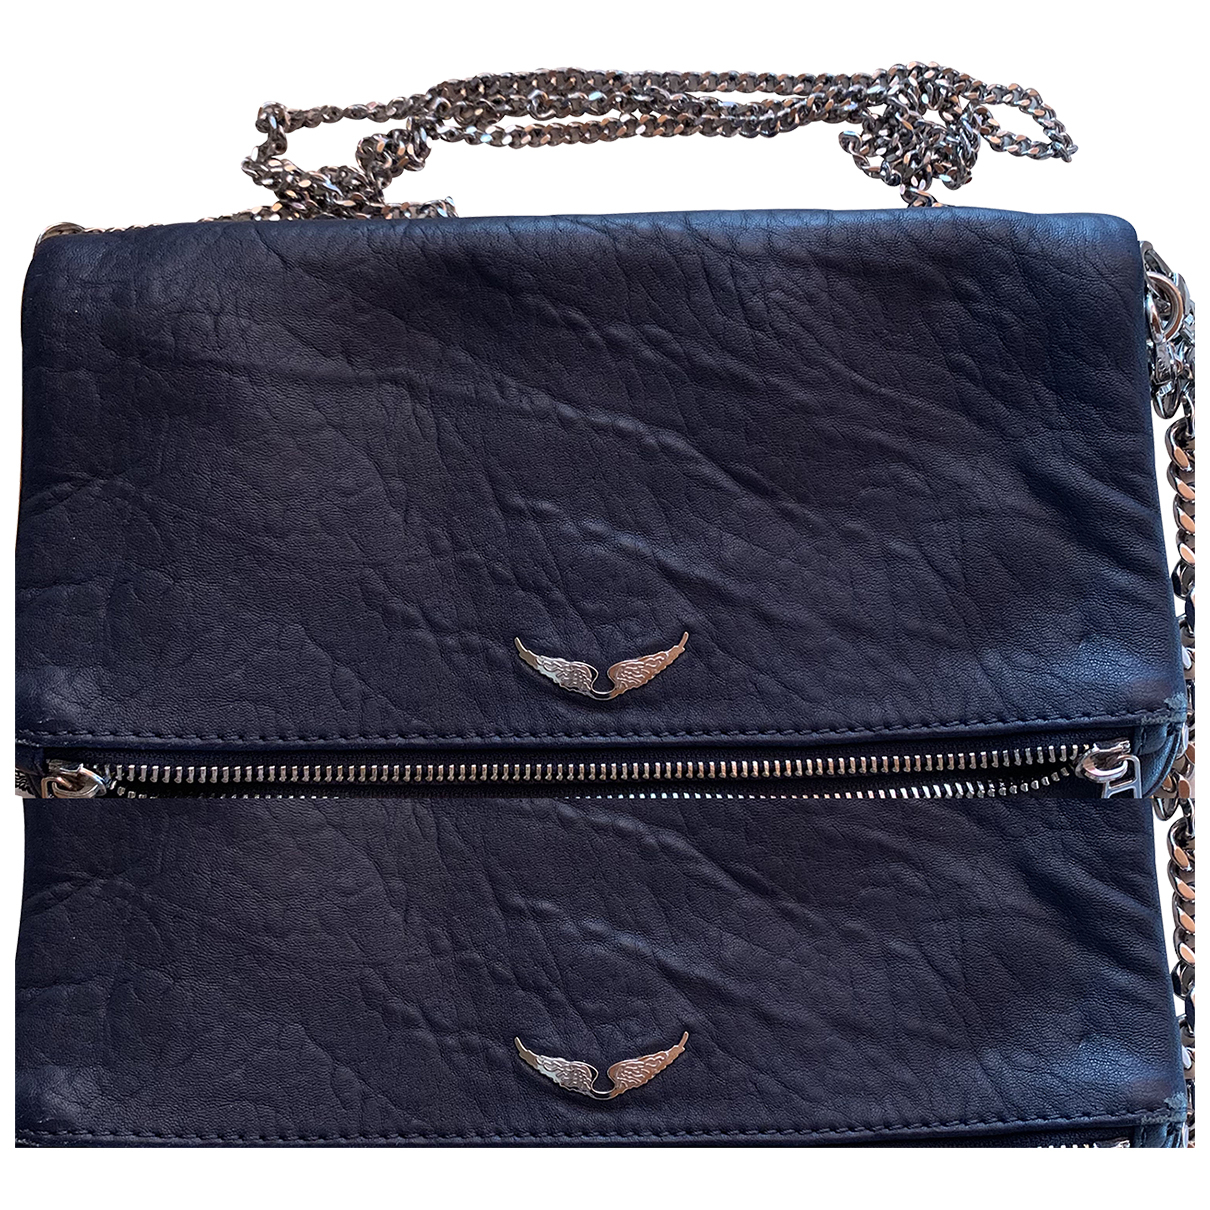 Zadig & Voltaire N Blue Leather Clutch bag for Women N